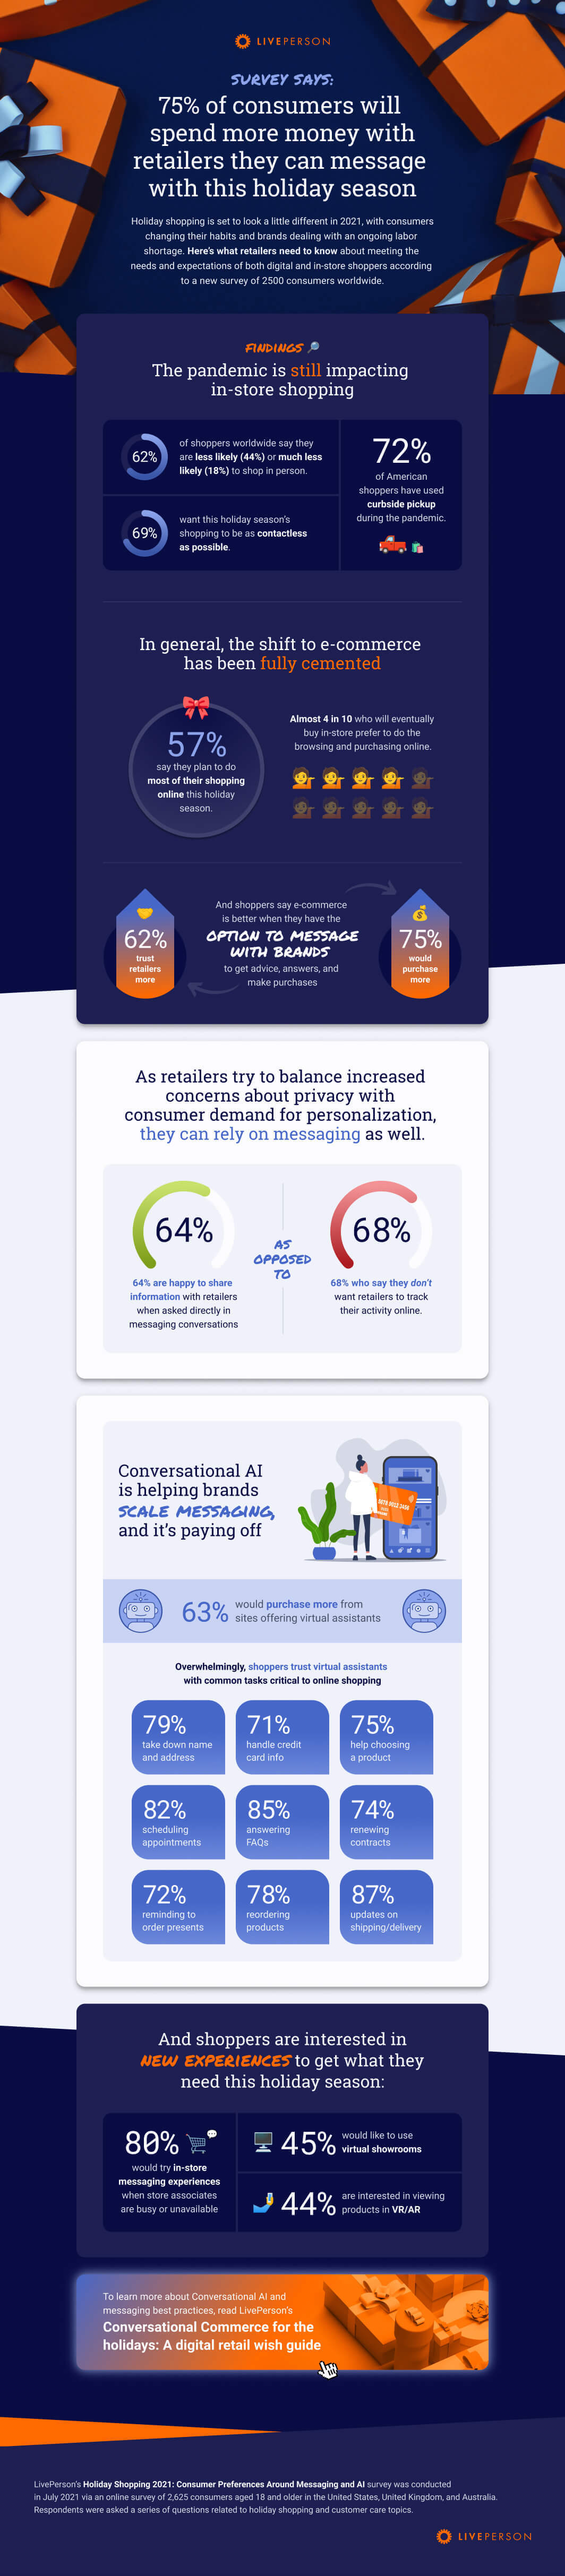 2021 holiday shopping infographic